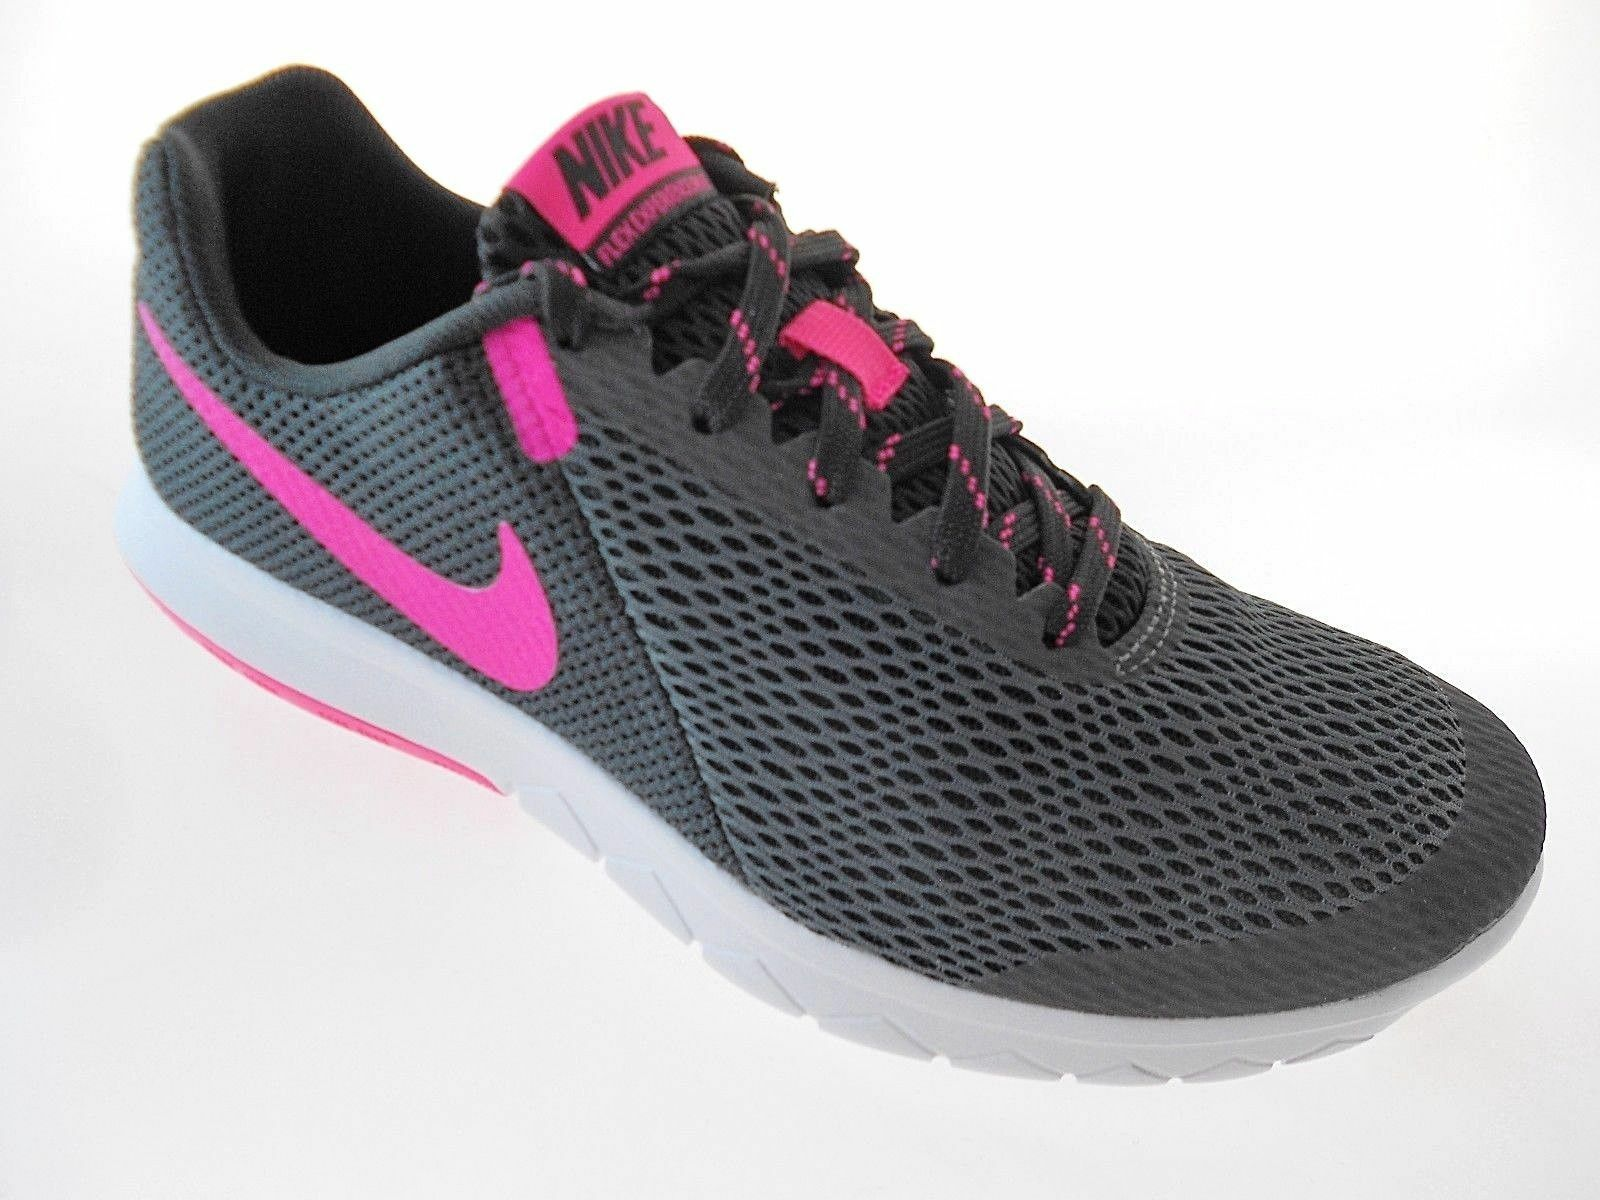 Nike Flex Experience RN 5 Womens Wide Running Shoes 869566-002 Black/Pink/White Comfortable and good-looking